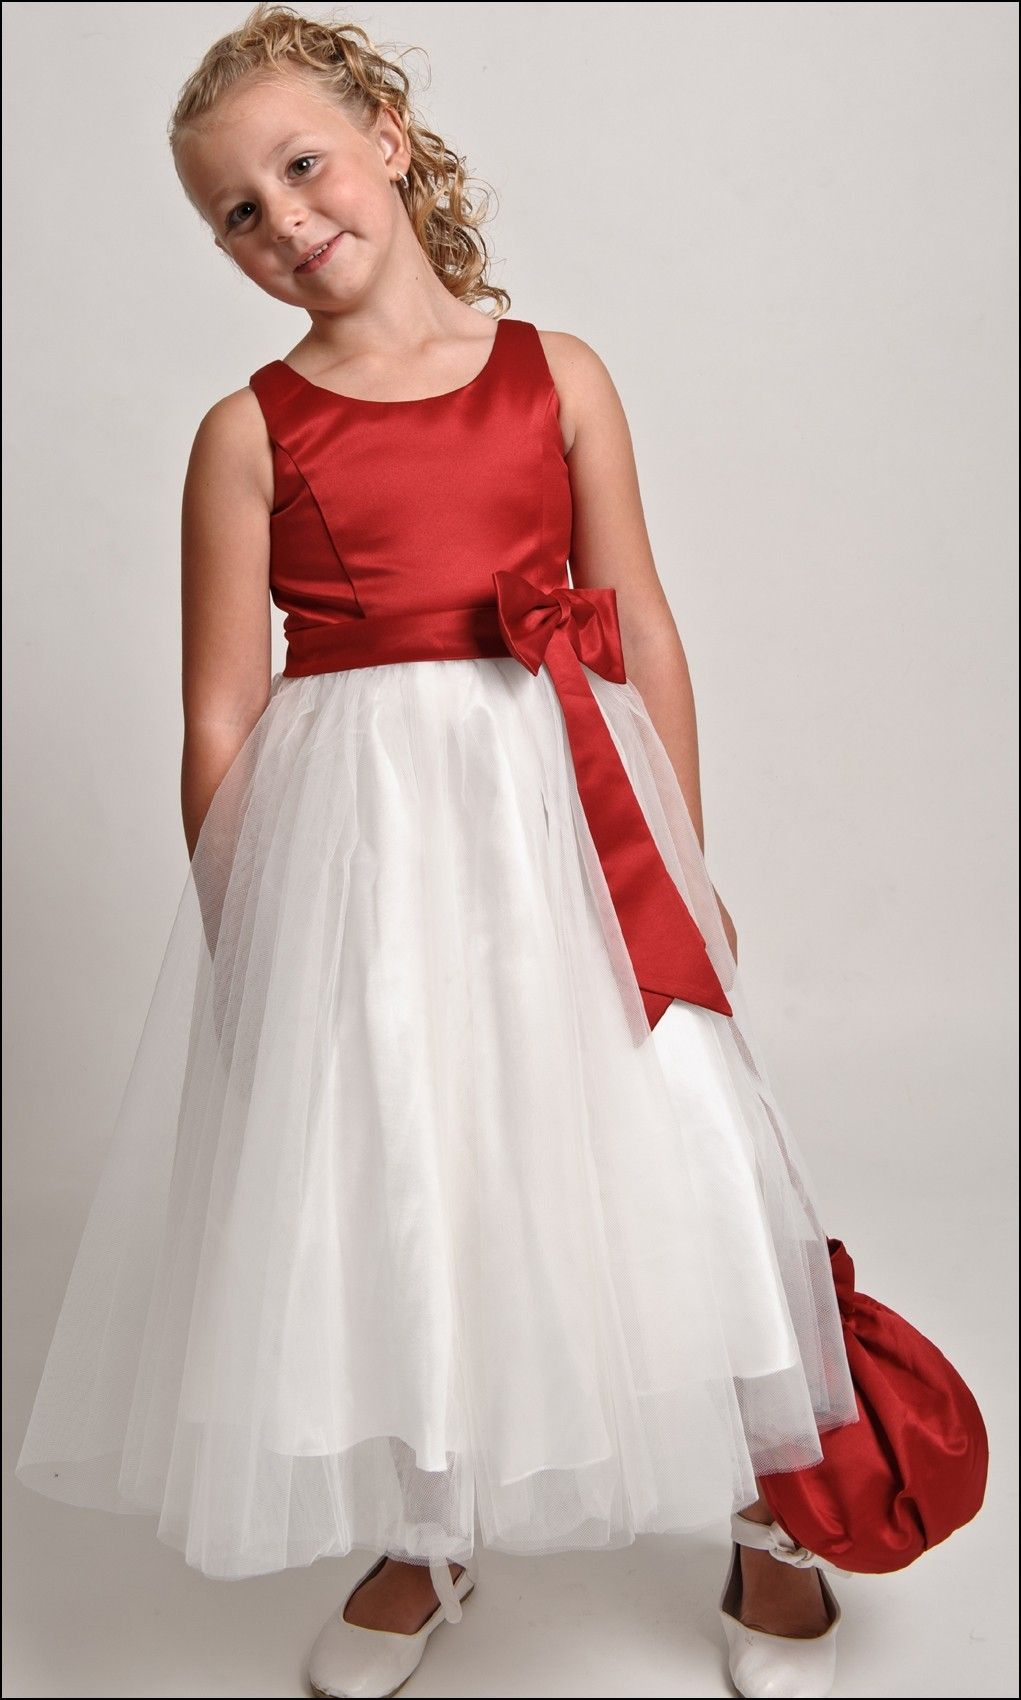 Red Childrens Bridesmaid Dresses | Dresses and Gowns Ideas ...